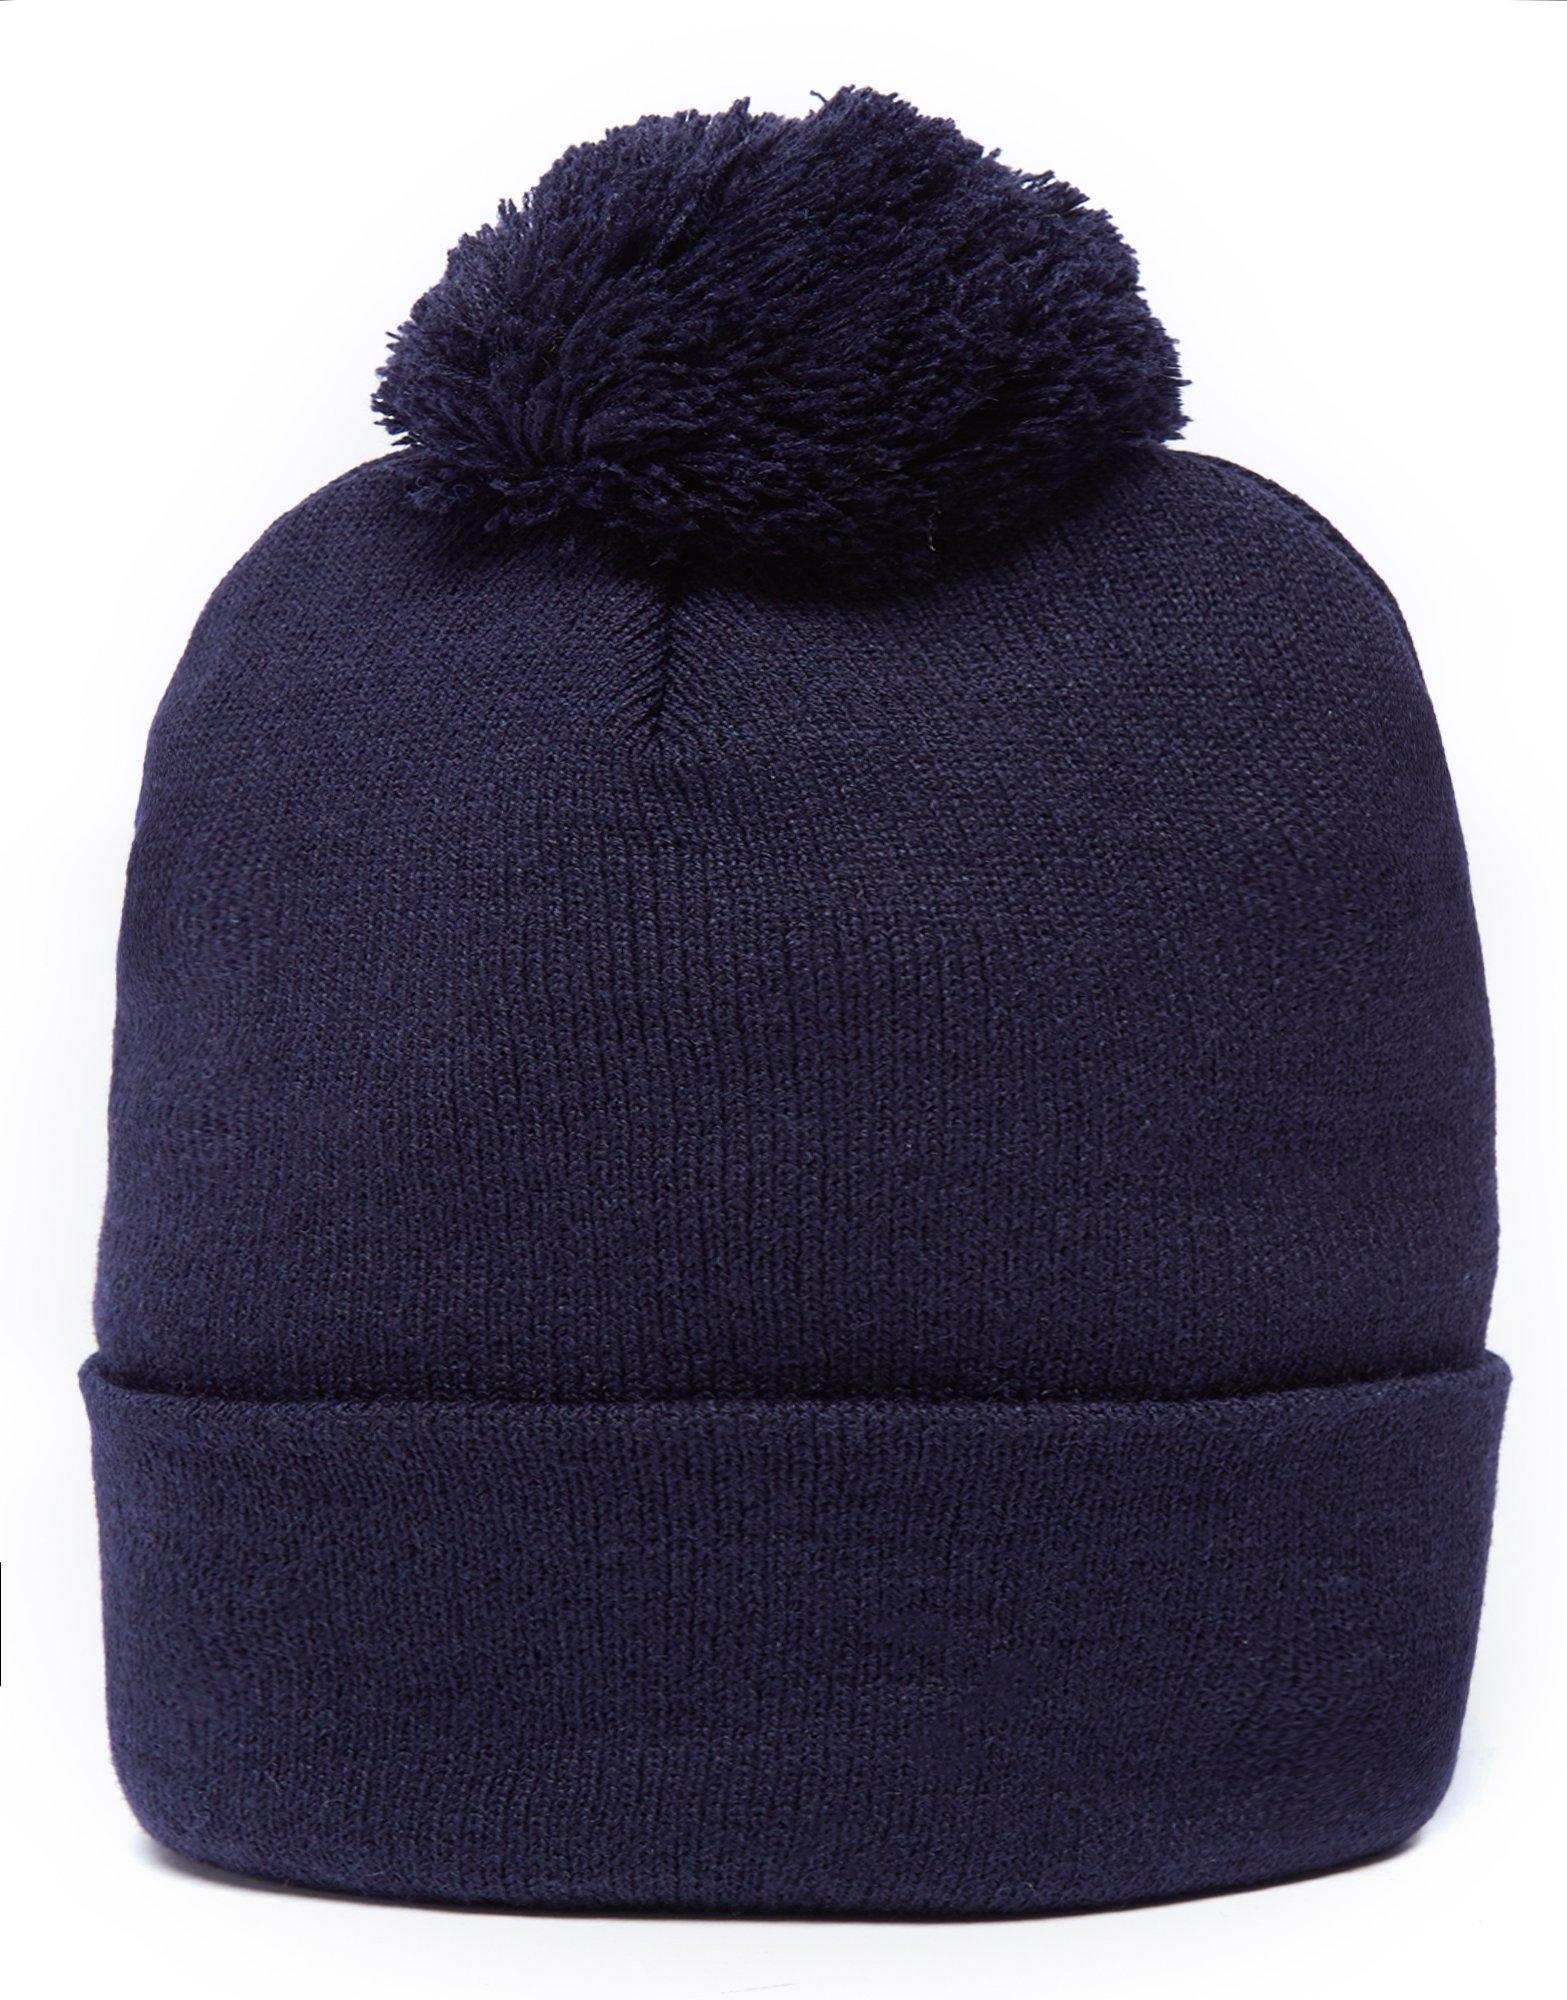 Ellesse Patch Pom Pom Beanie Hat in Blue for Men - Lyst 7847ee3c9dc2